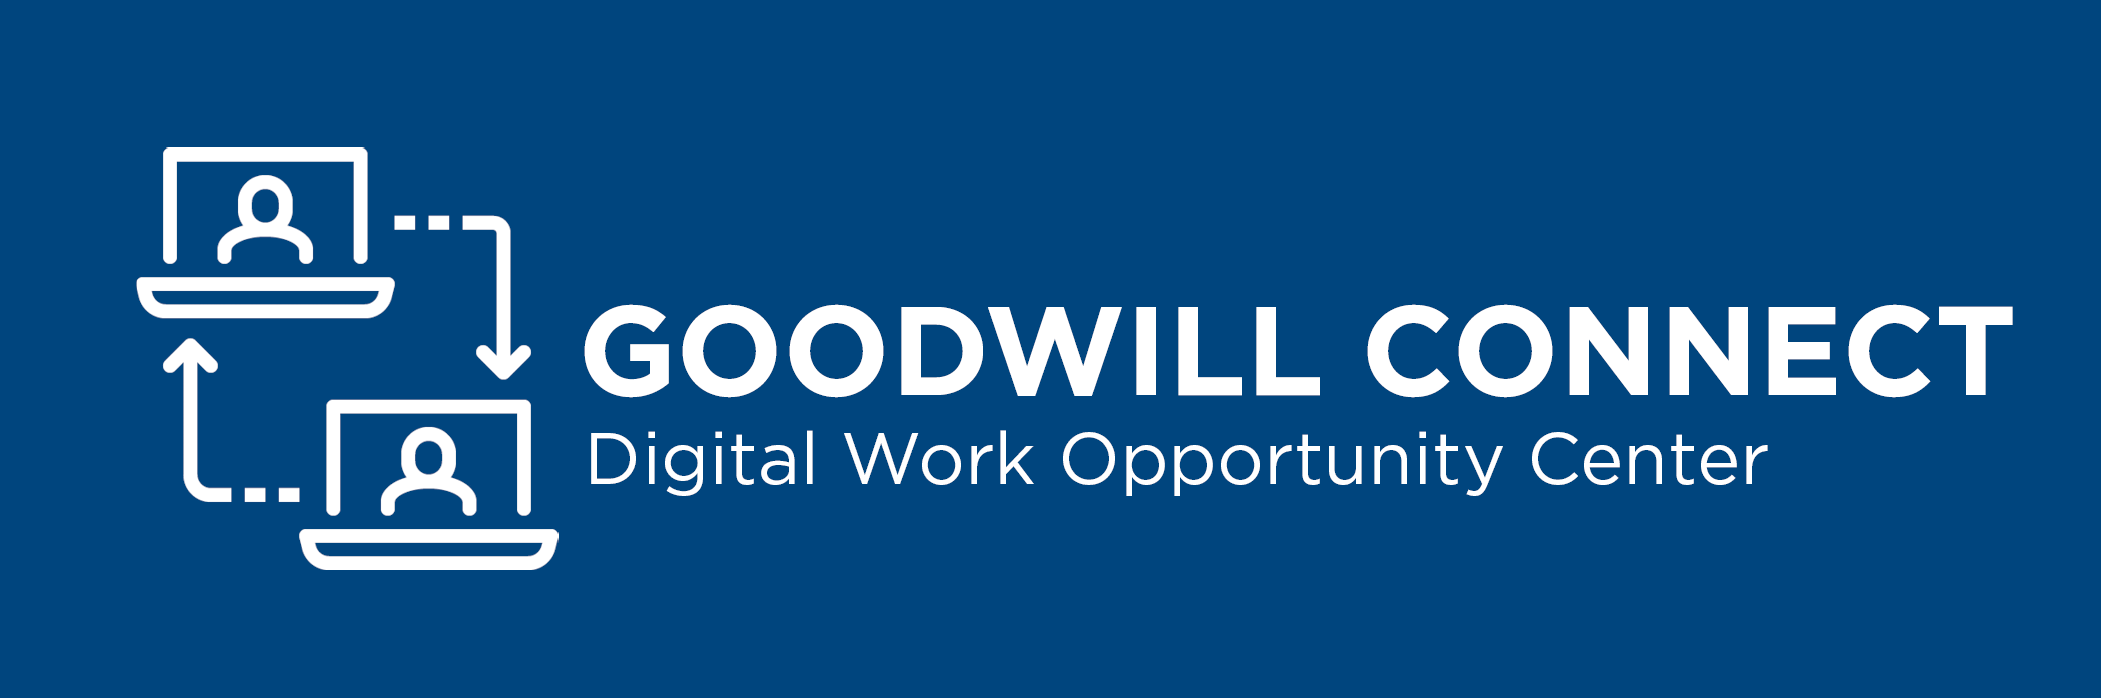 goodwill connect header